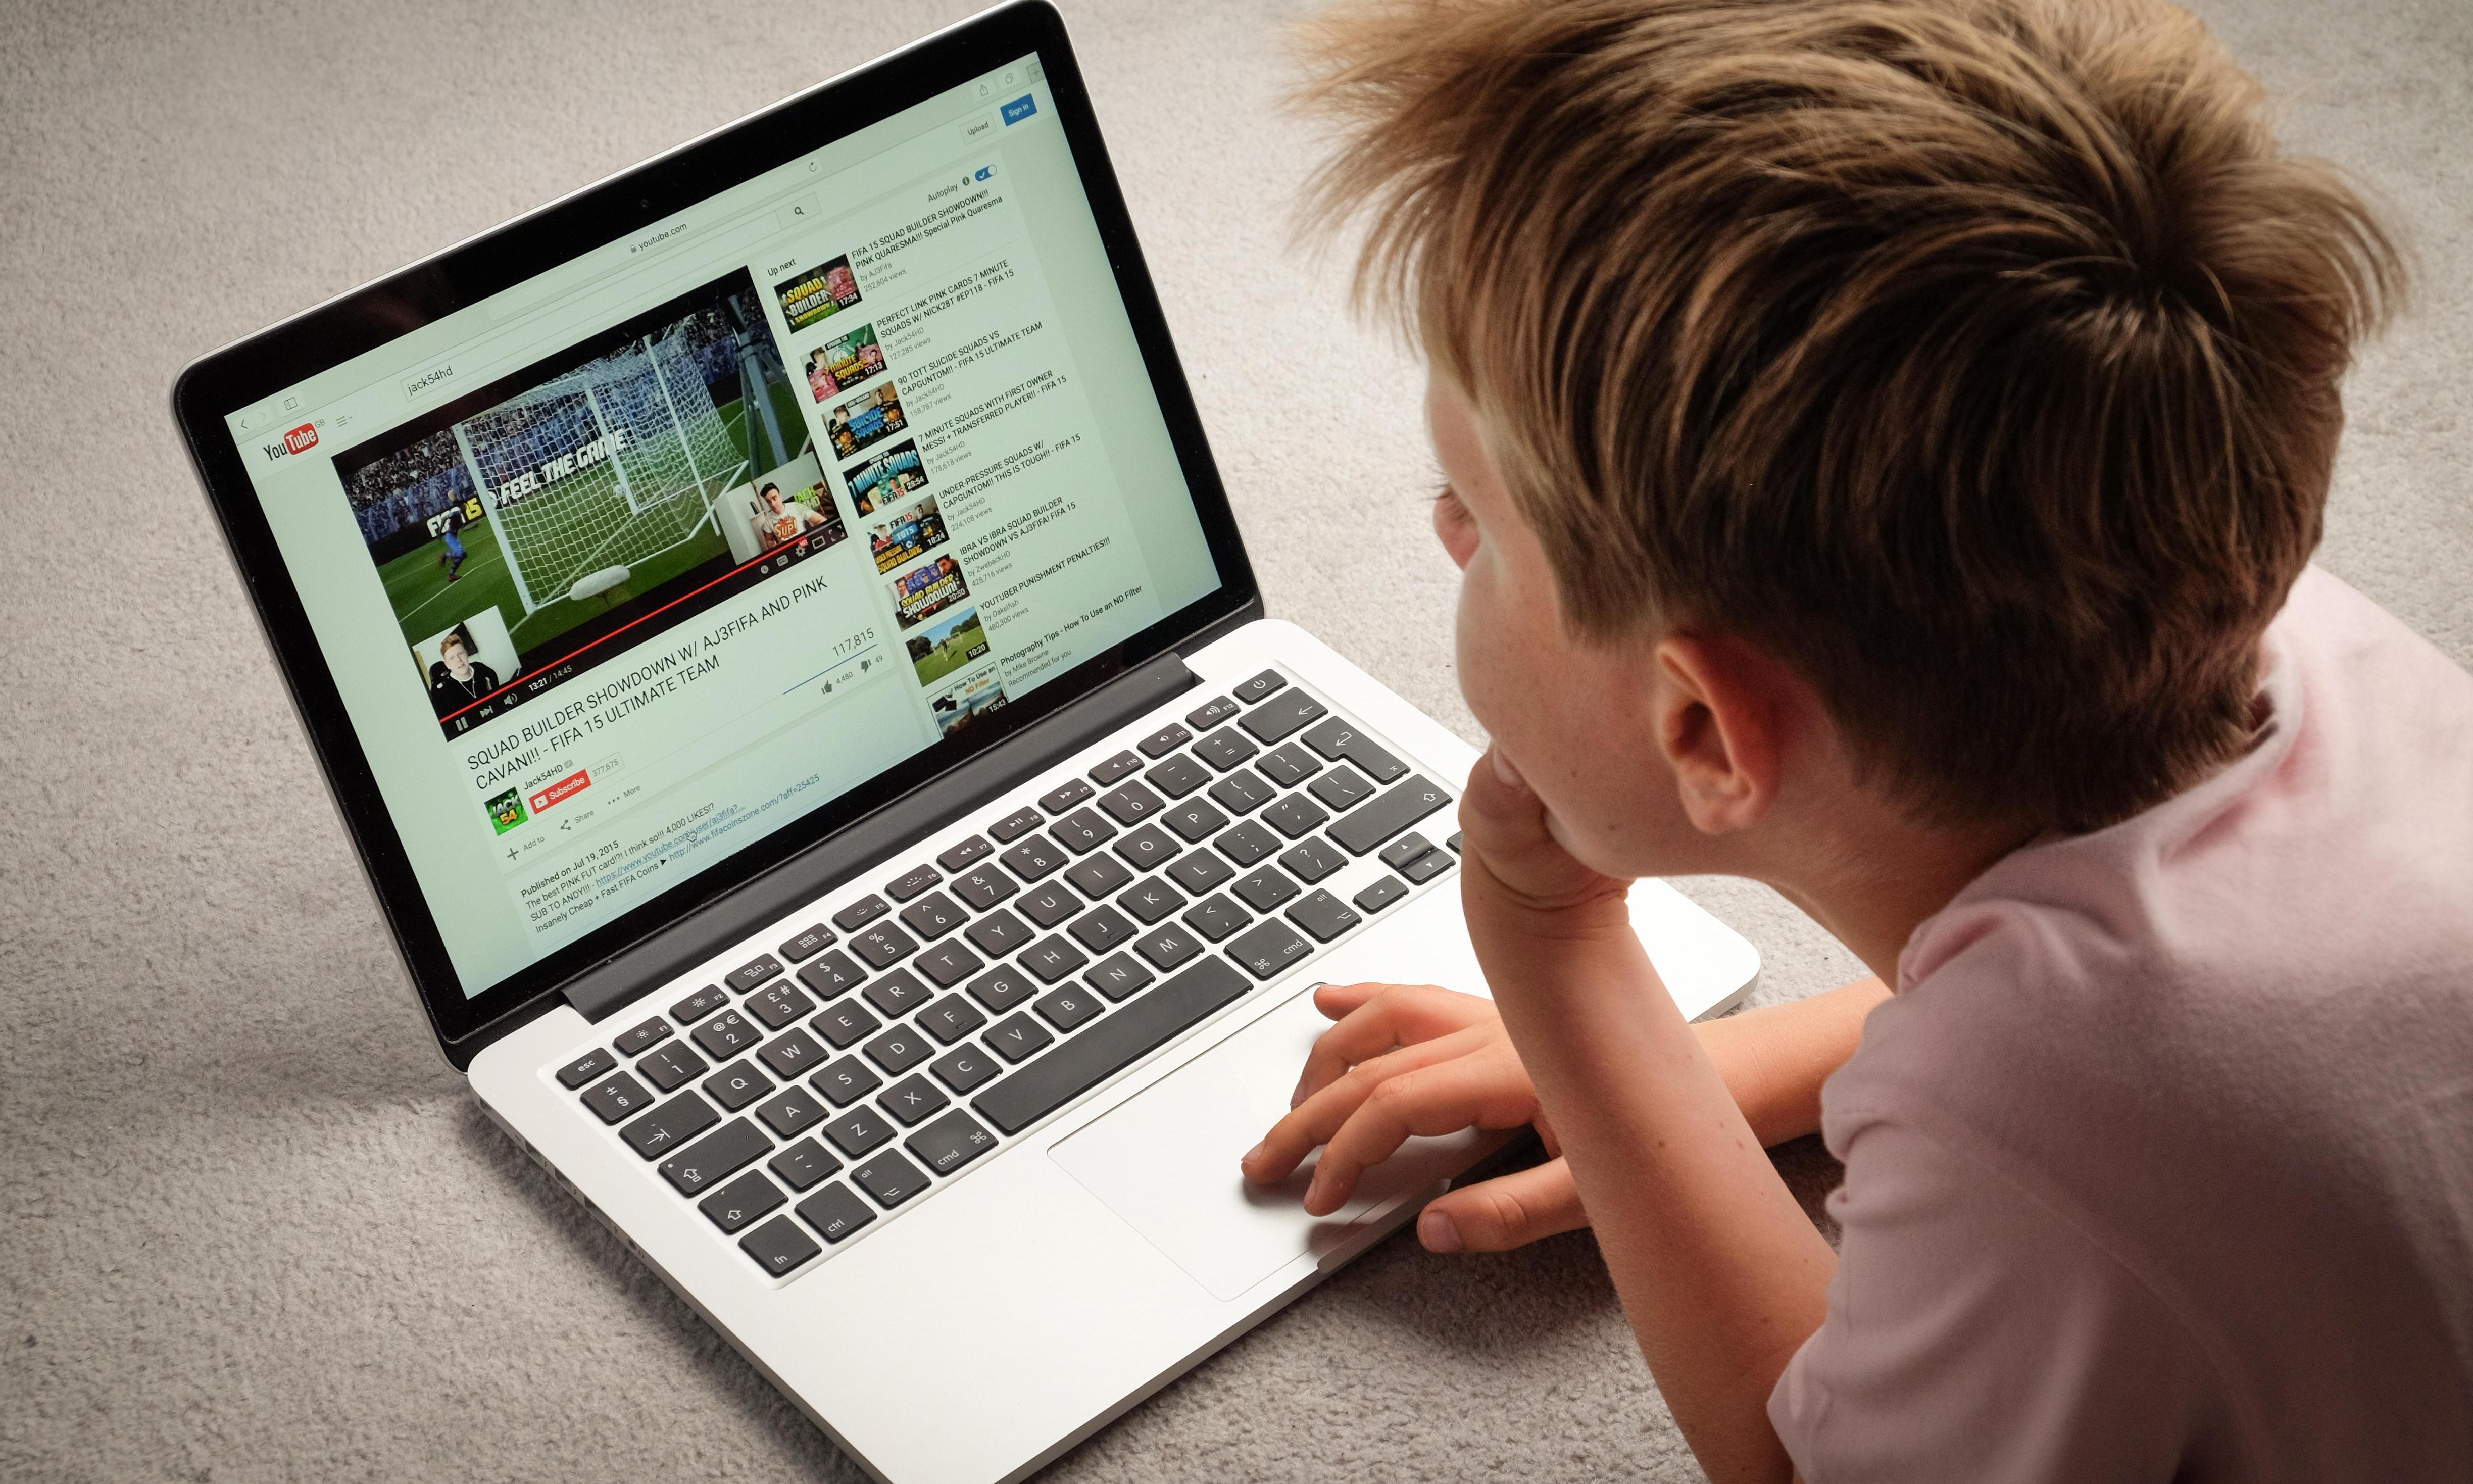 YouTube's fine and child safety online